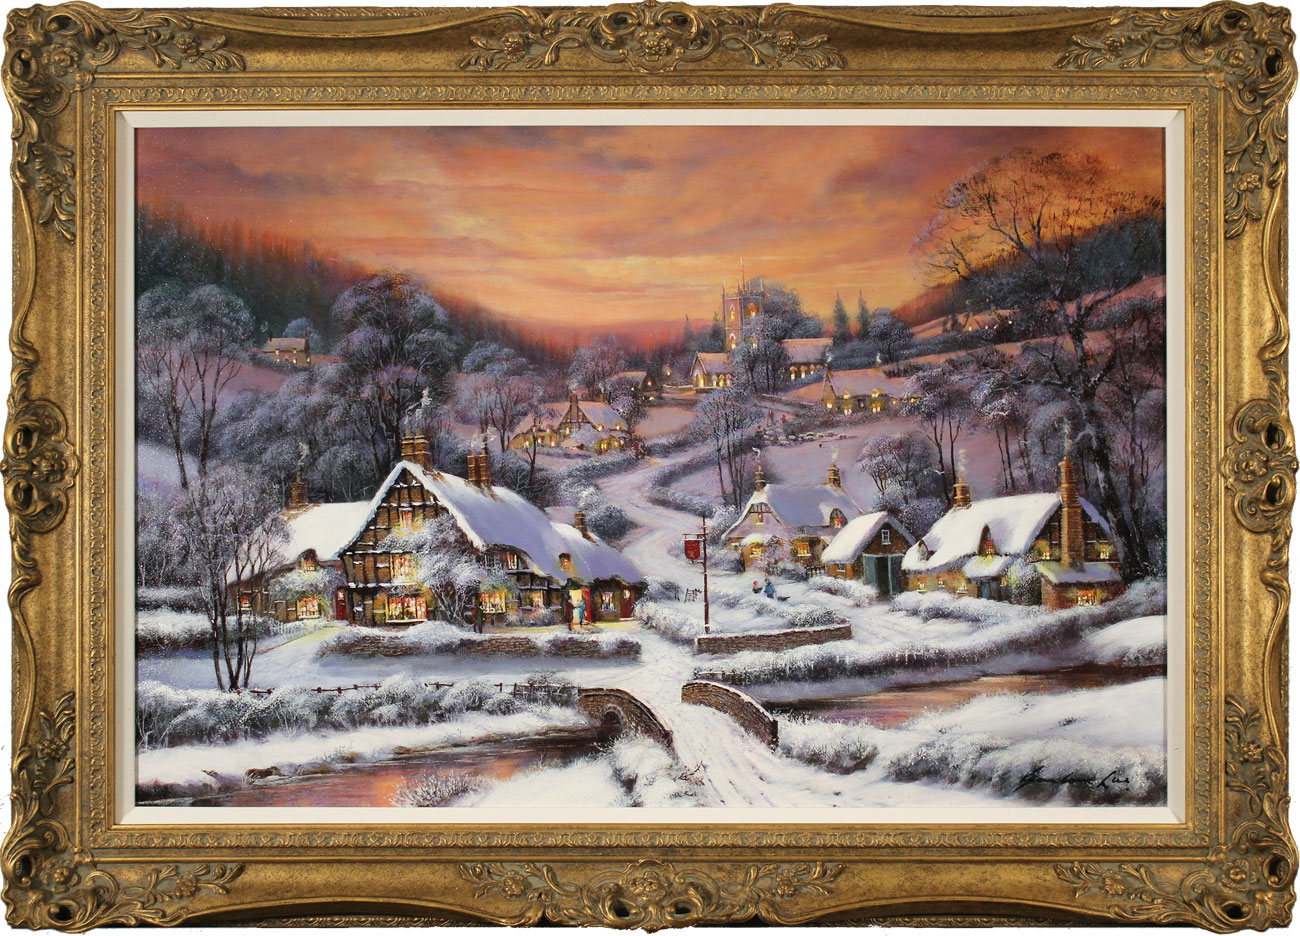 Gordon Lees, Original oil painting on canvas, A Winter's Eve, The Cotswolds, click to enlarge